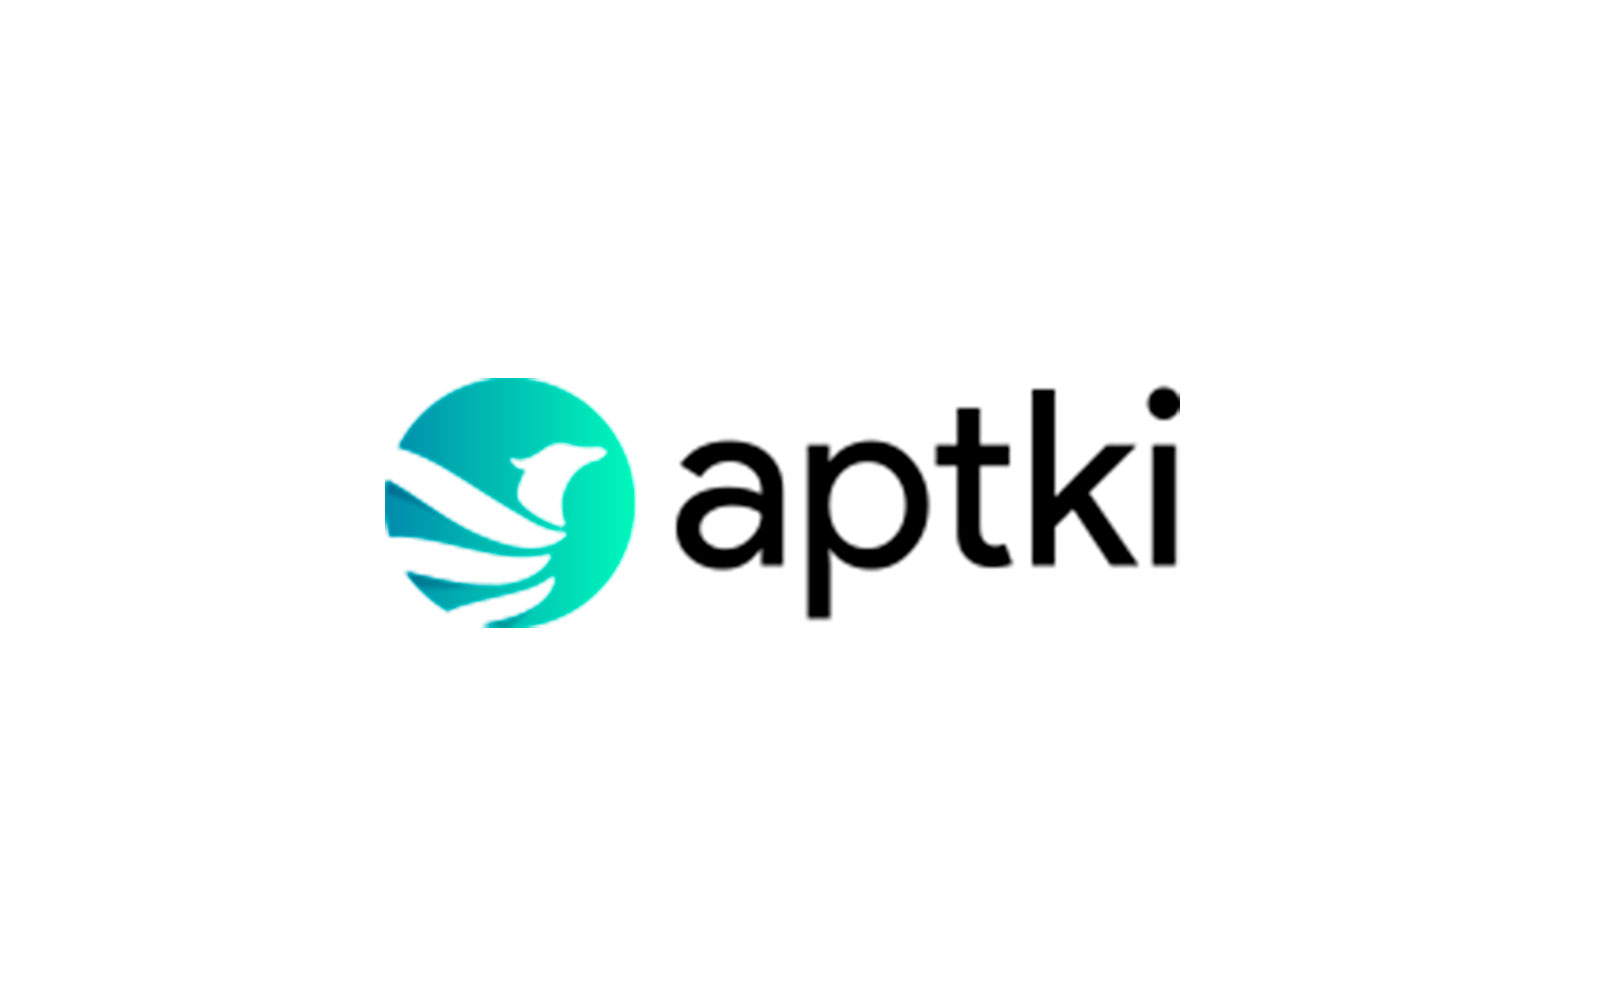 Aptki Global Partners